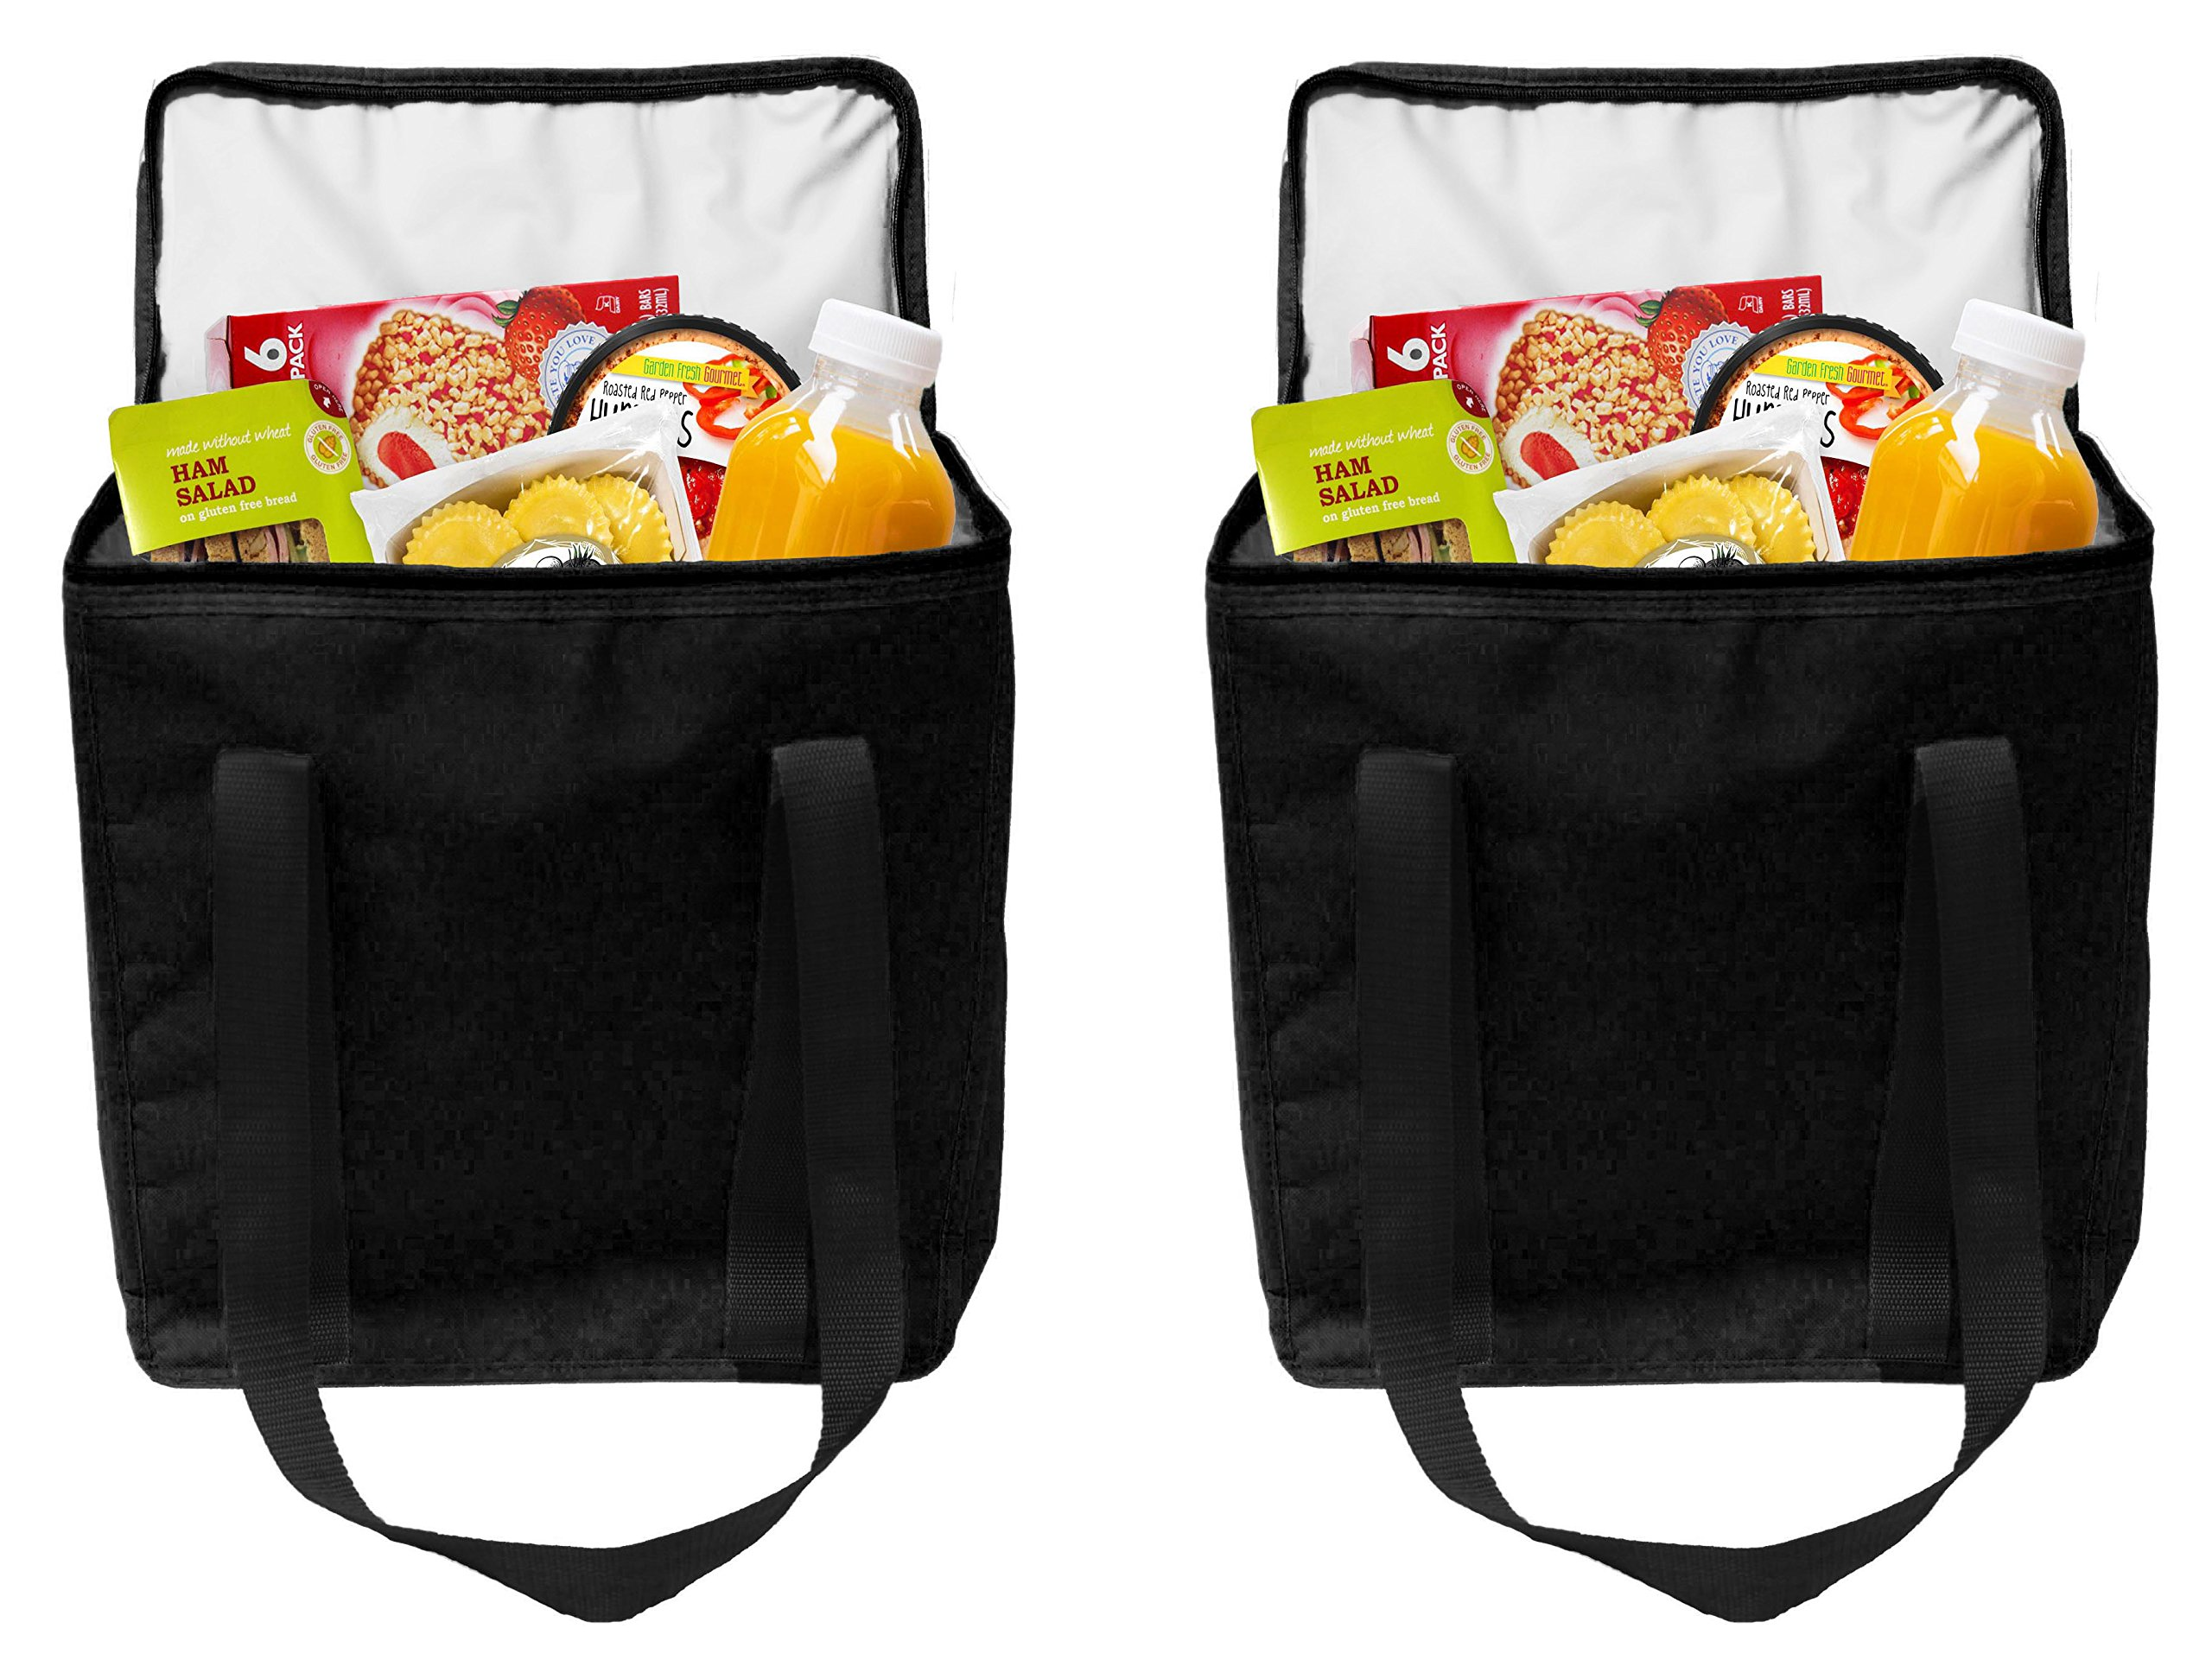 Earthwise Reusable Insulated Grocery Bags Heavy Duty Nylon Thermal Cooler Tote WATERPROOF In all Black w/ZIPPER Closure KEEPS FOOD HOT OR COLD (2 Pack) by Earthwise